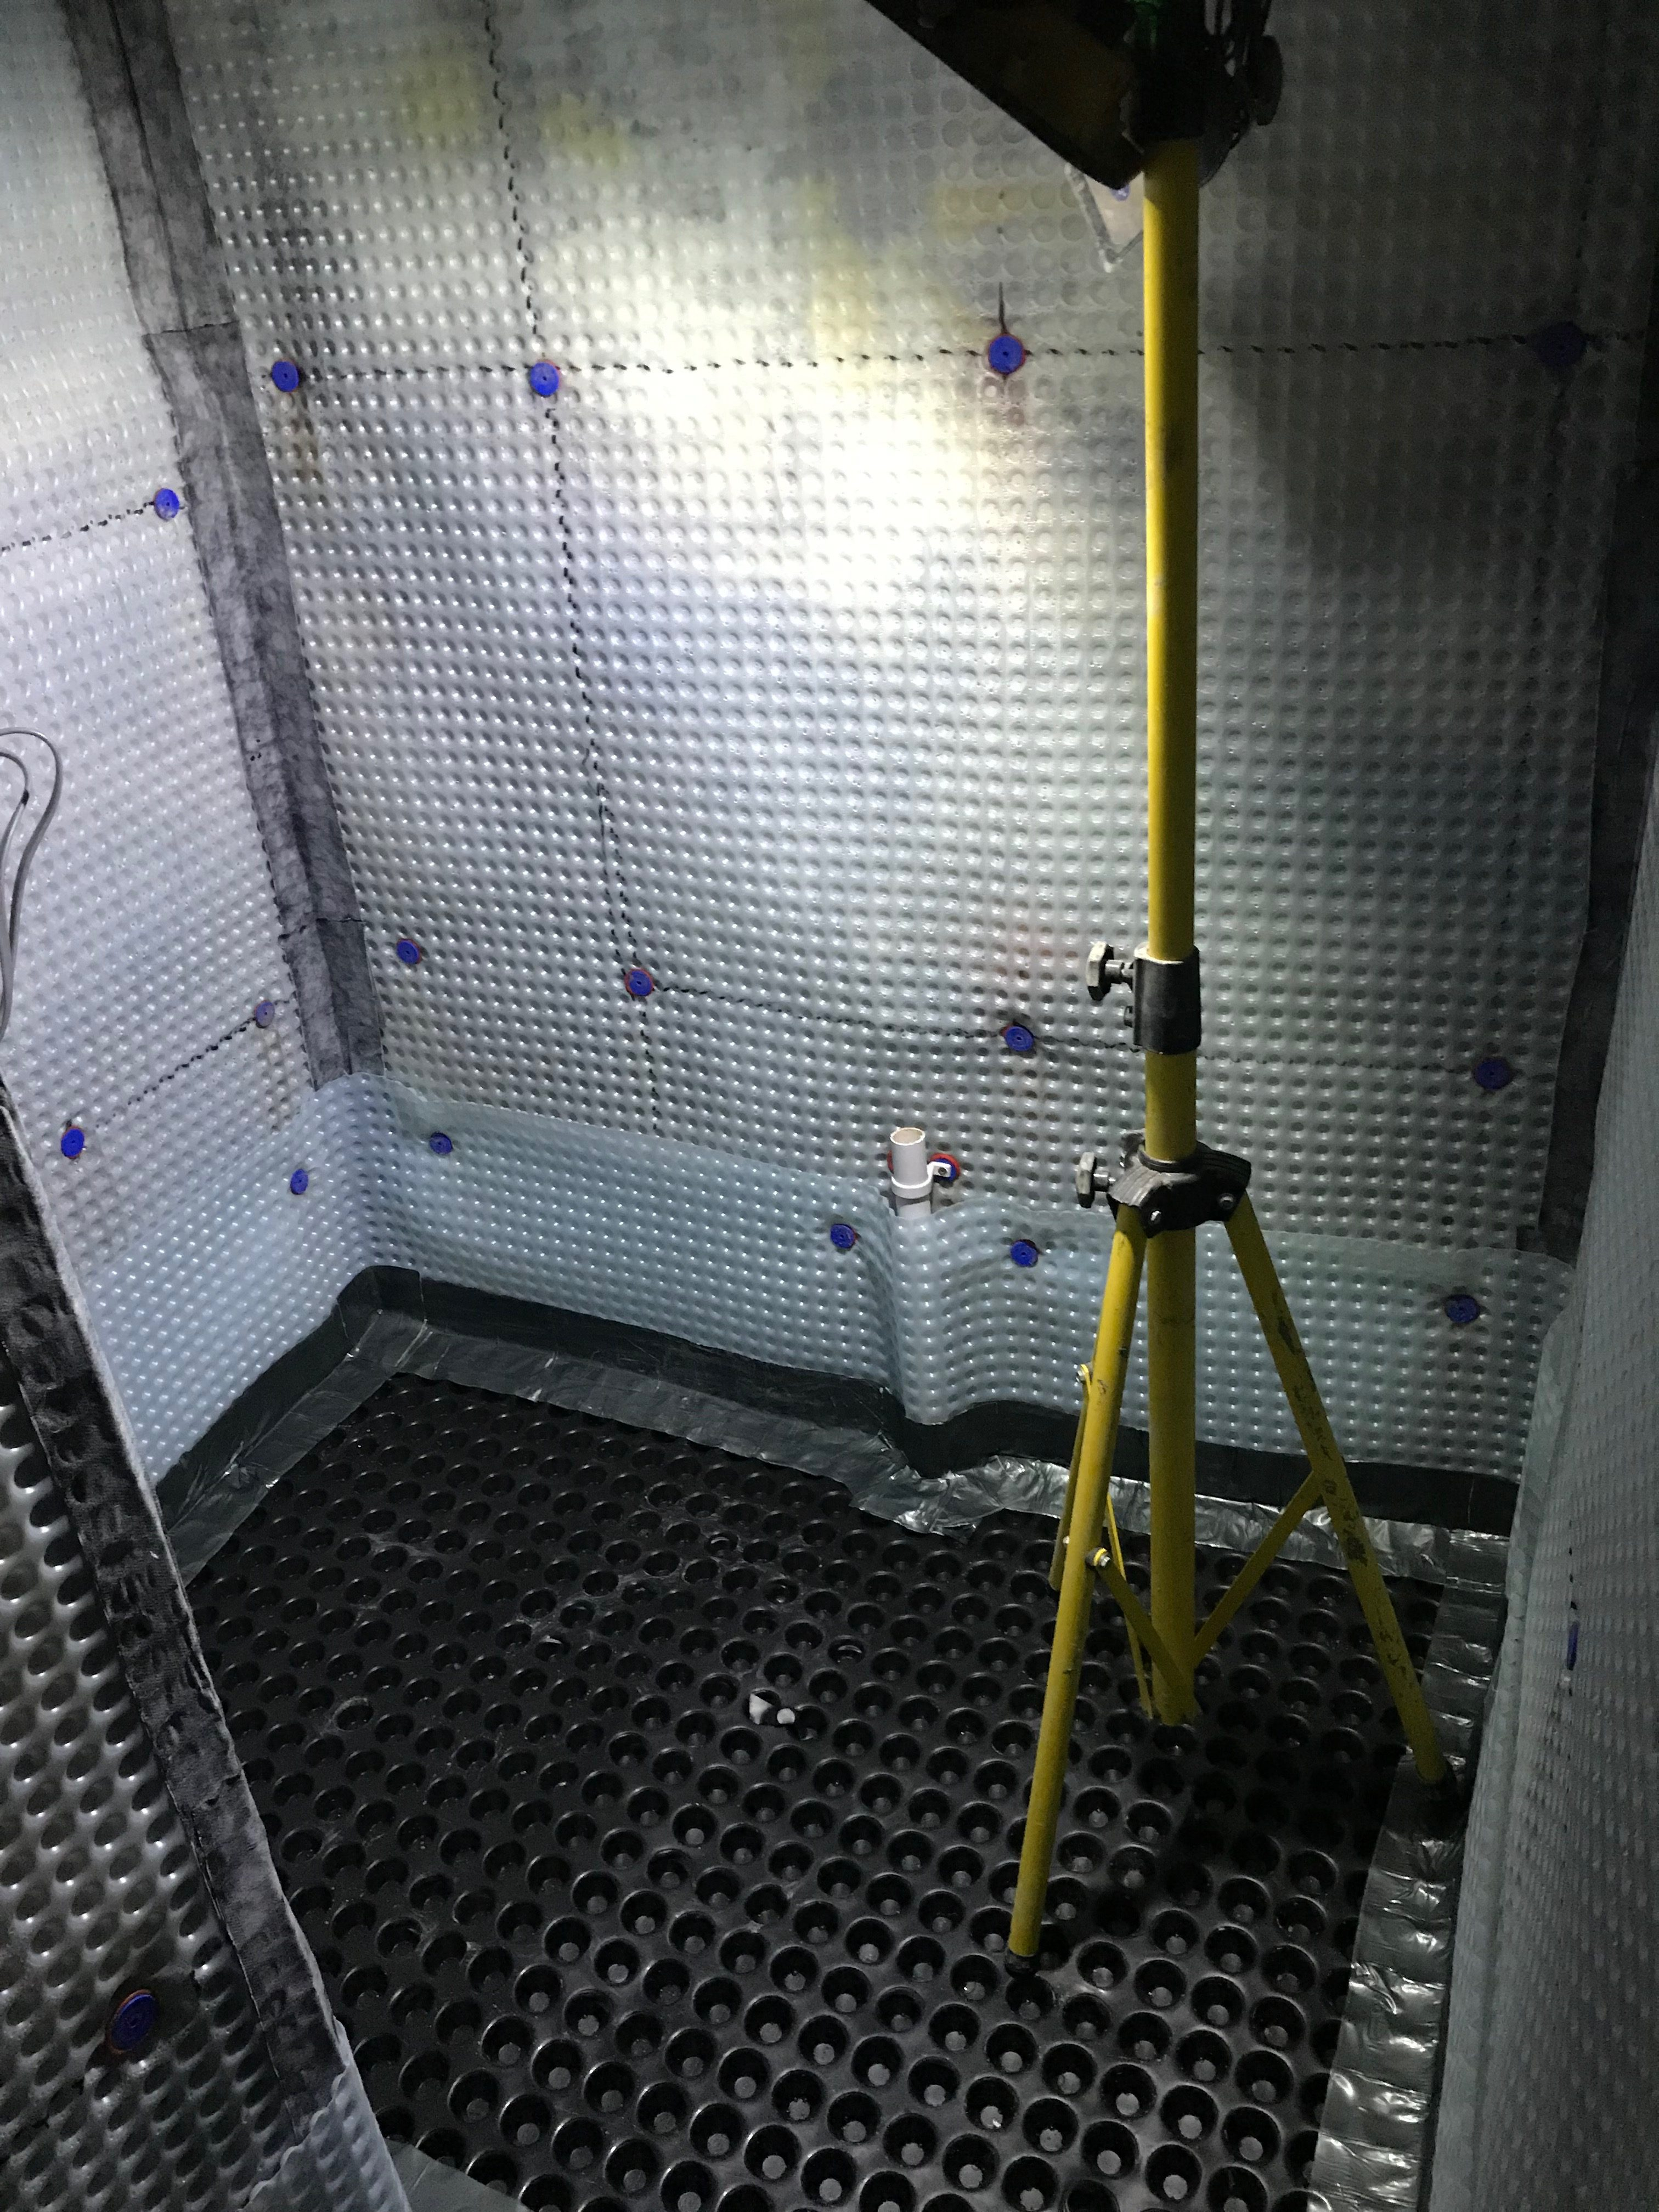 Flushing points embeded in to the membranes for maintenance